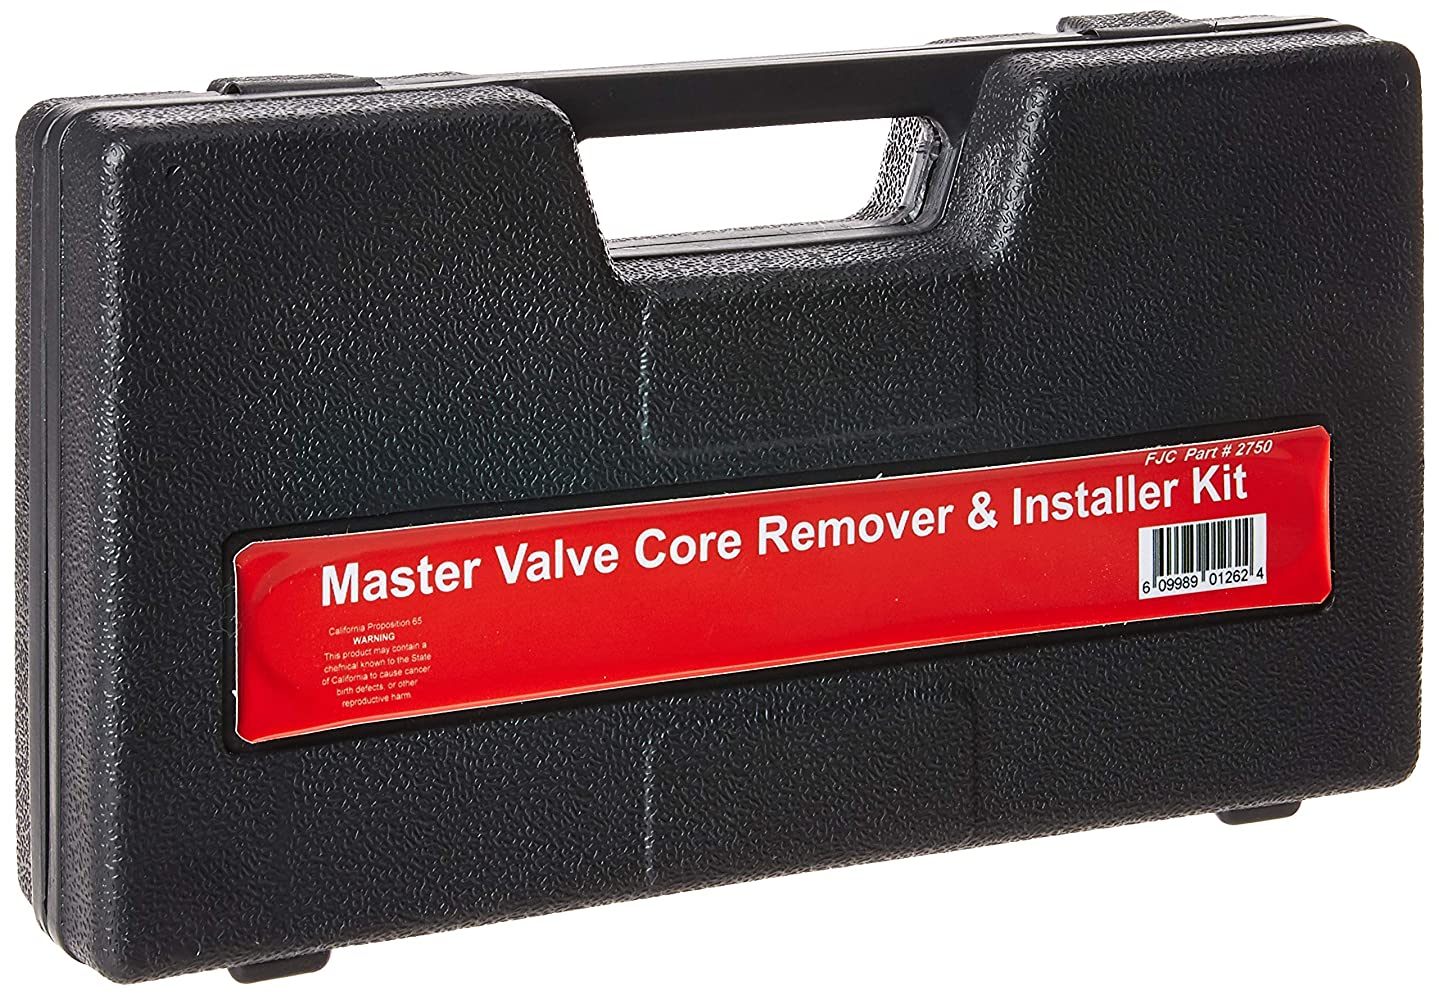 FJC 2750 Master Valve Core Remover and Installer Kit